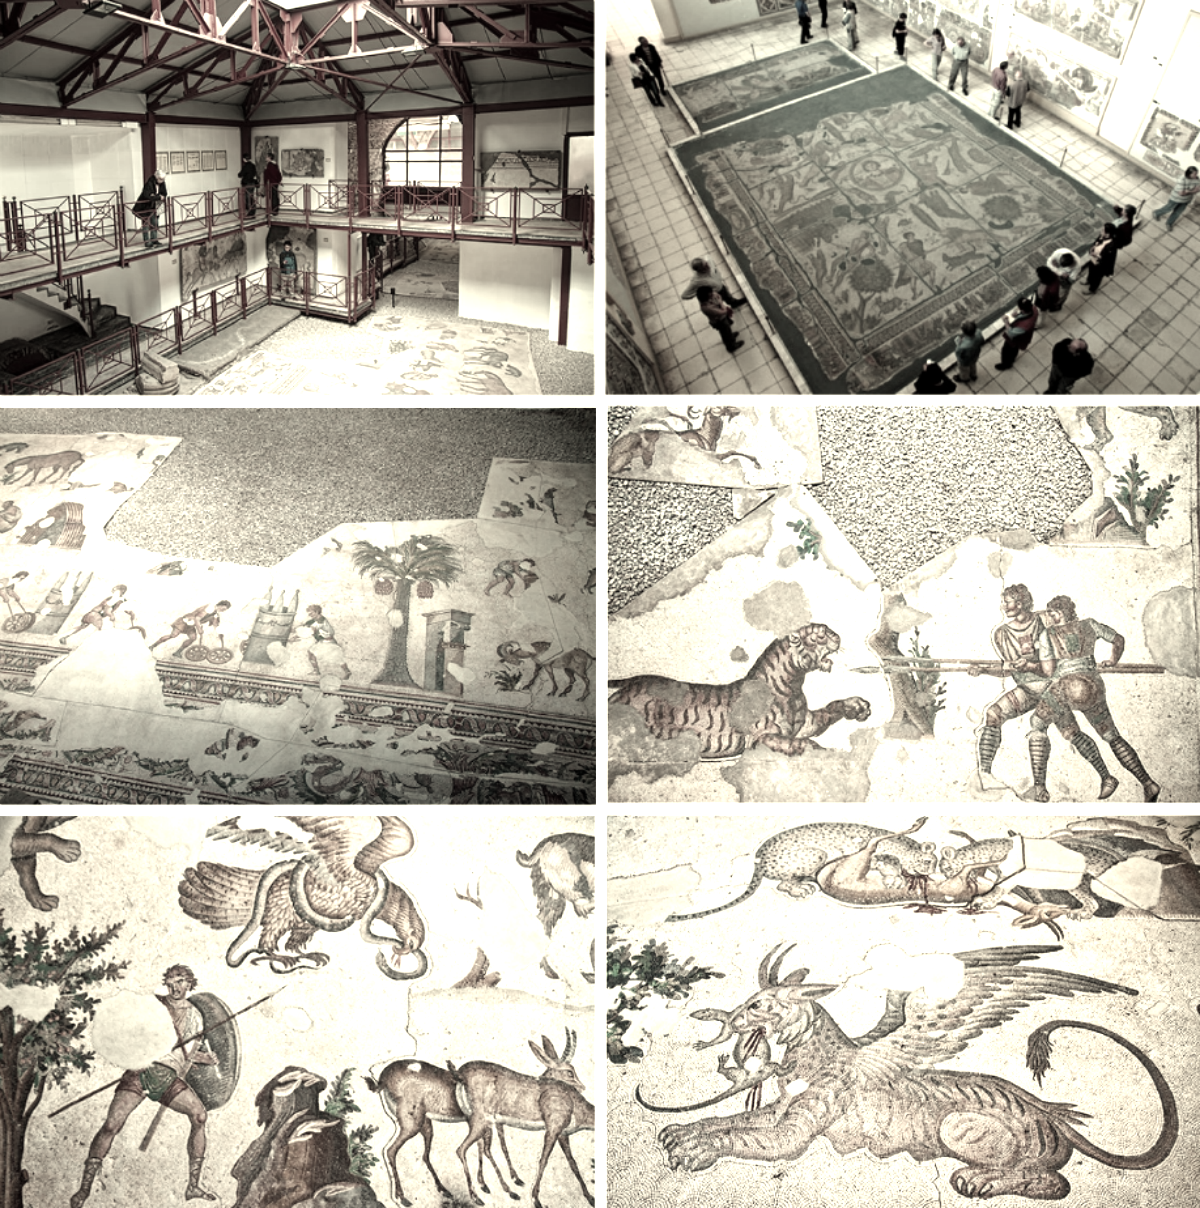 Museum Mosaics Istanbul The Museum Houses Mosaics From